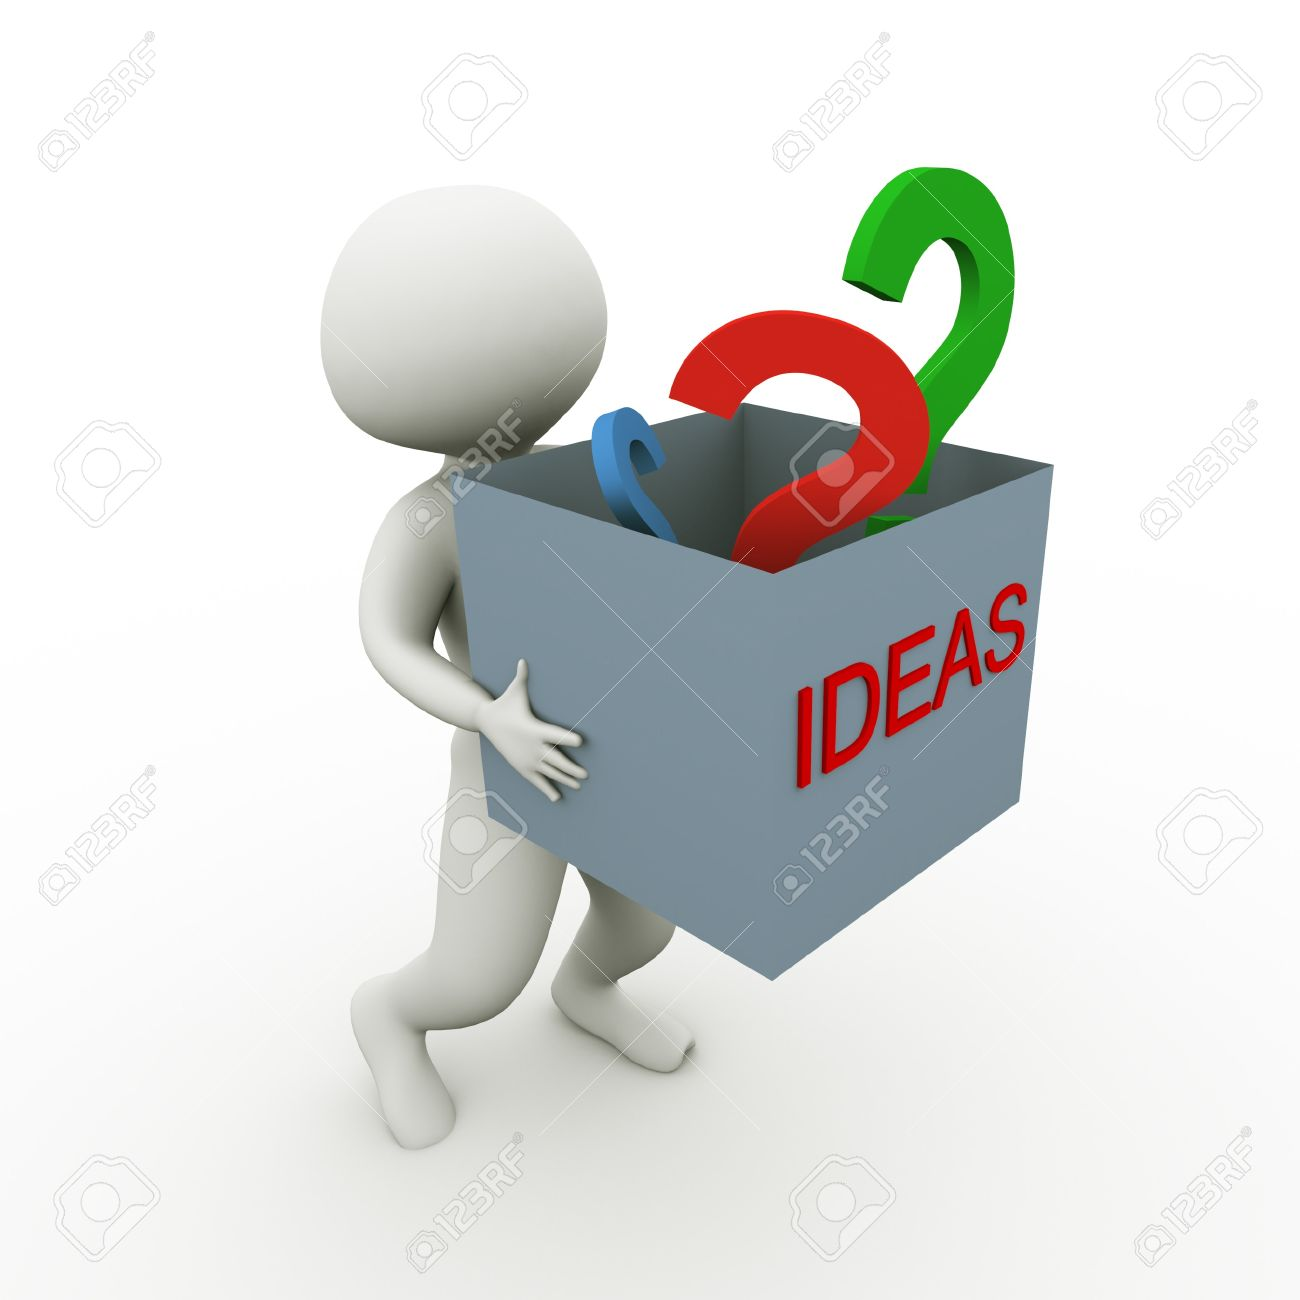 d man carrying box fill ideas and questions stock photo 3d man carrying box fill ideas and questions stock photo 10326732